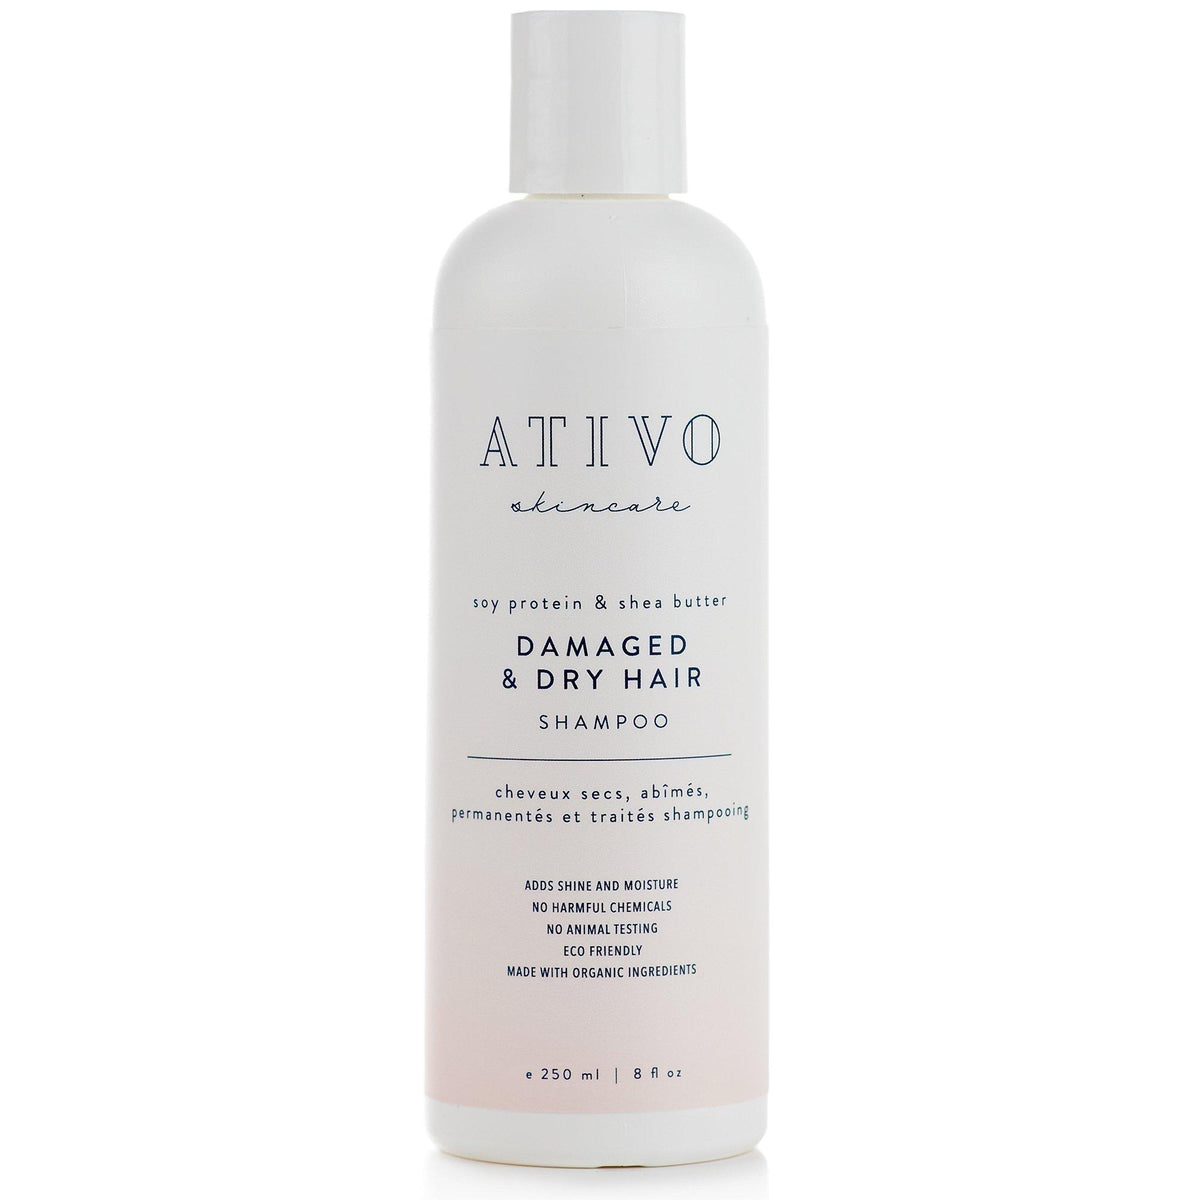 Damaged & Dry Hair Shampoo - Ativo Skincare